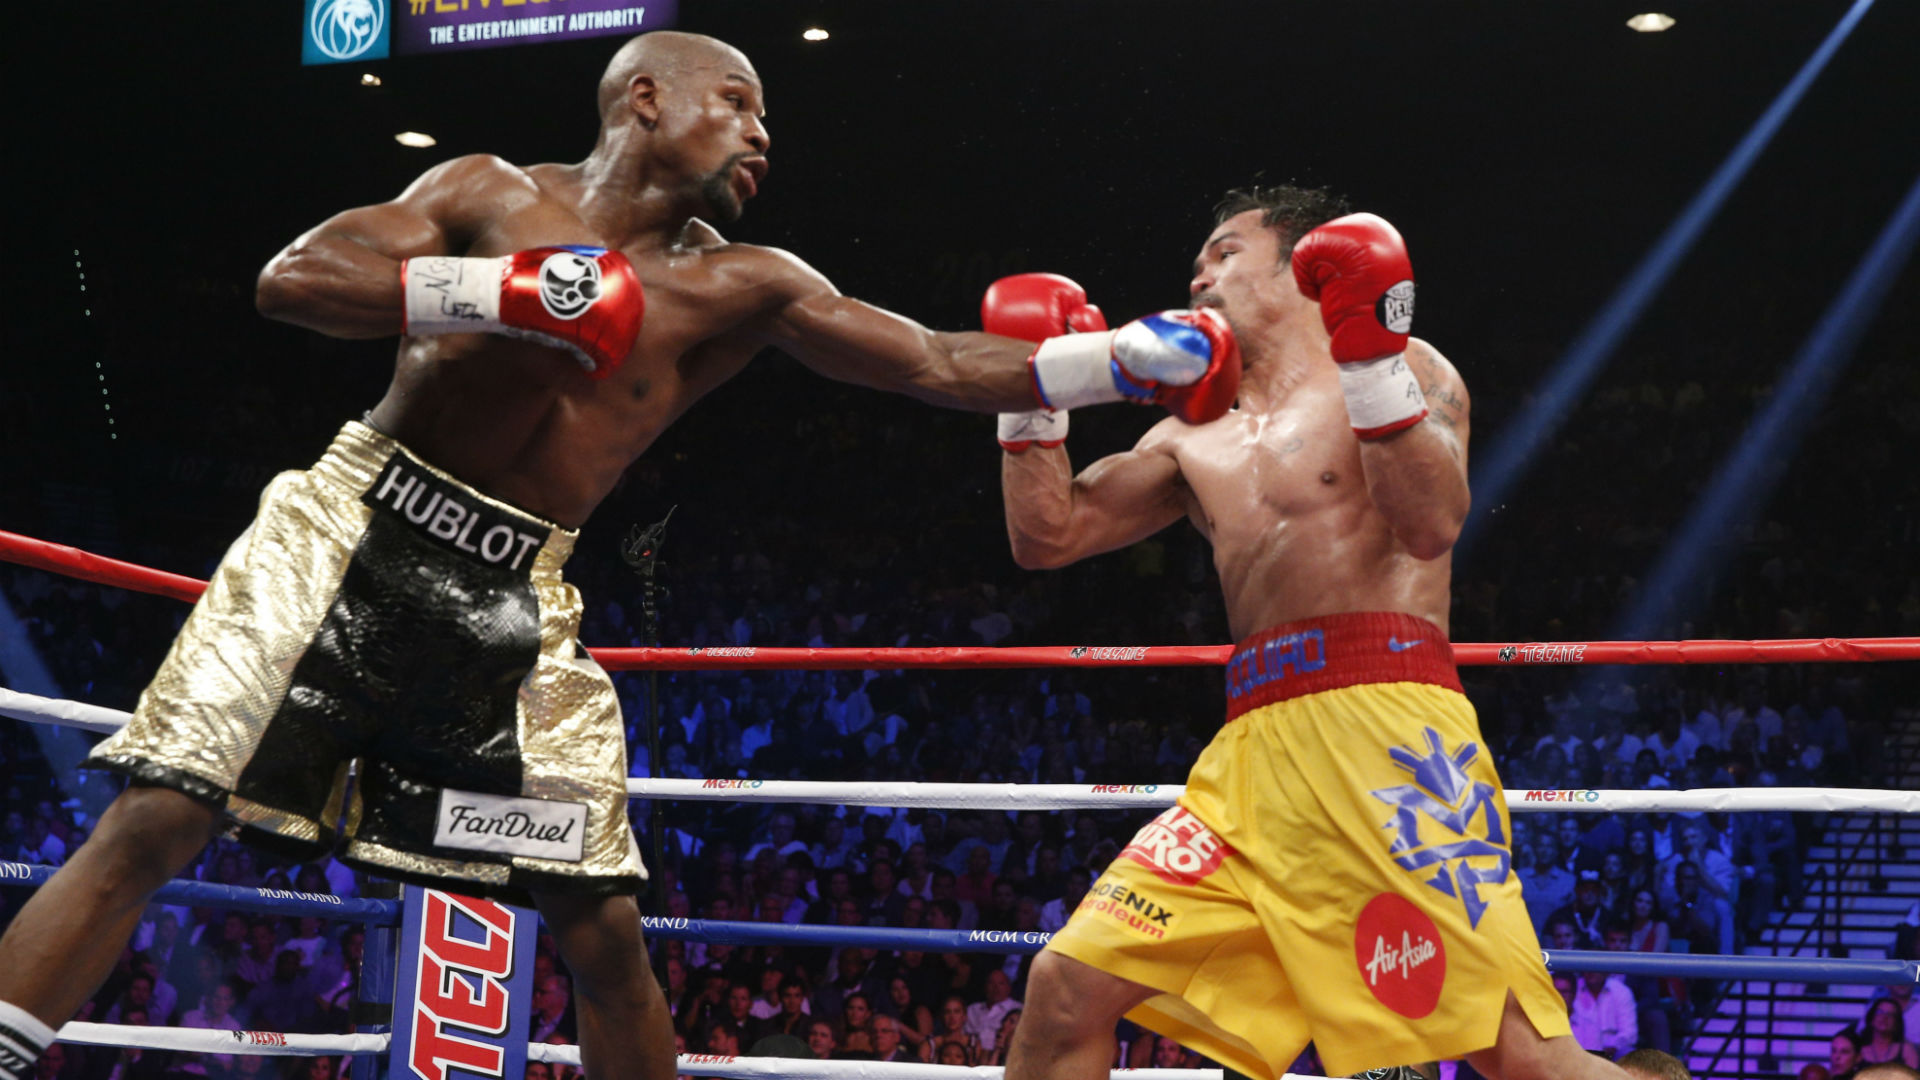 Manny Pacquiao trolls Floyd Mayweather in since-deleted tweet